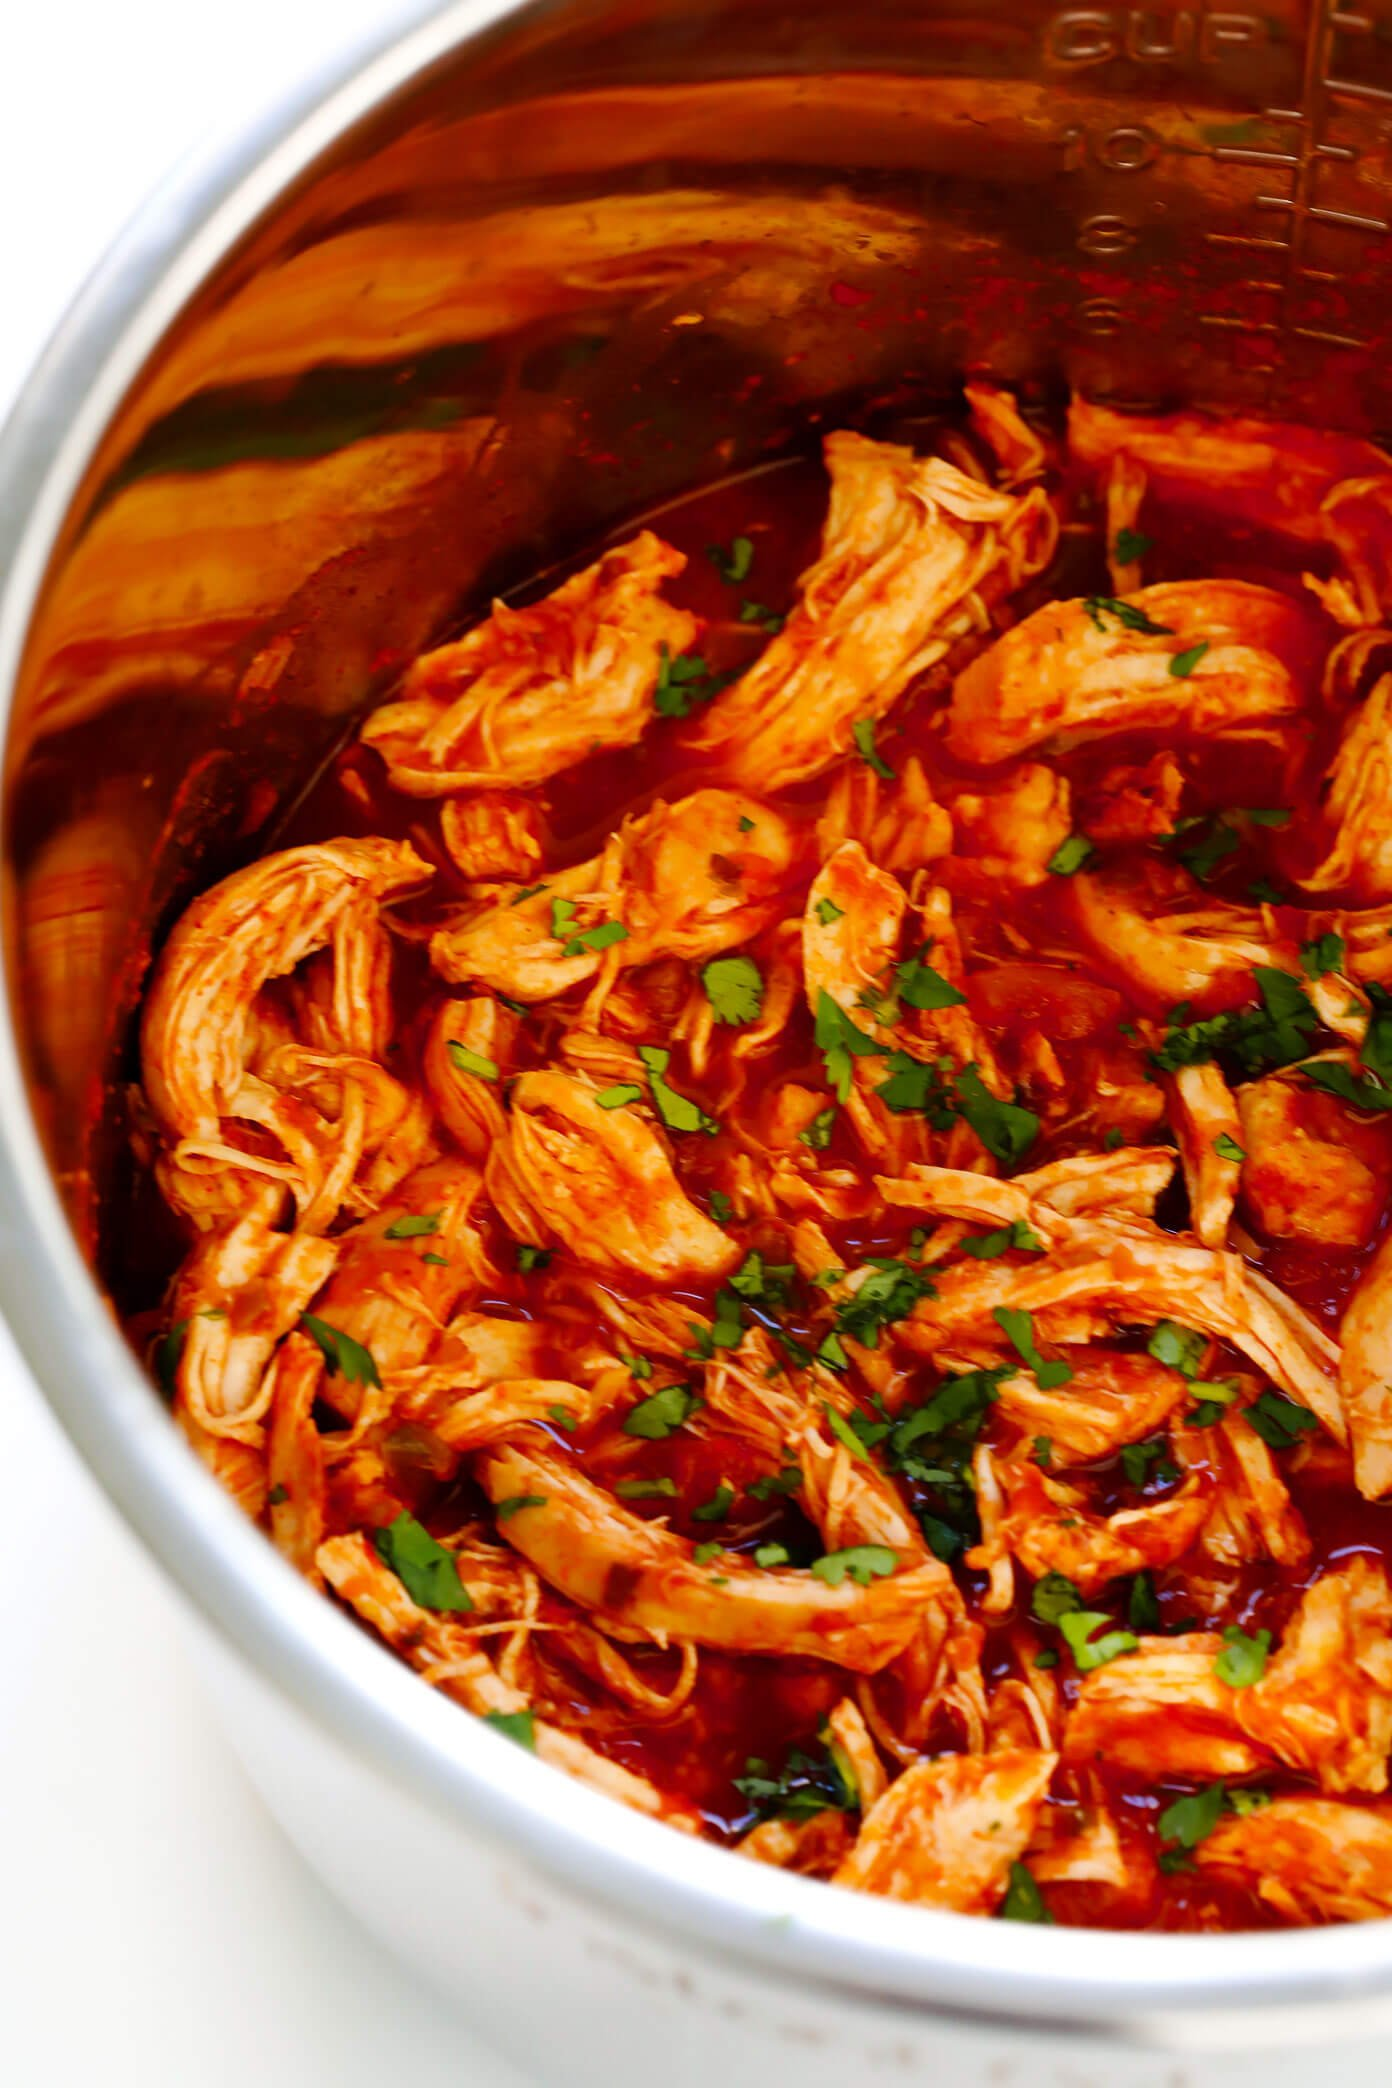 How do i make shredded chicken in a slow cooker